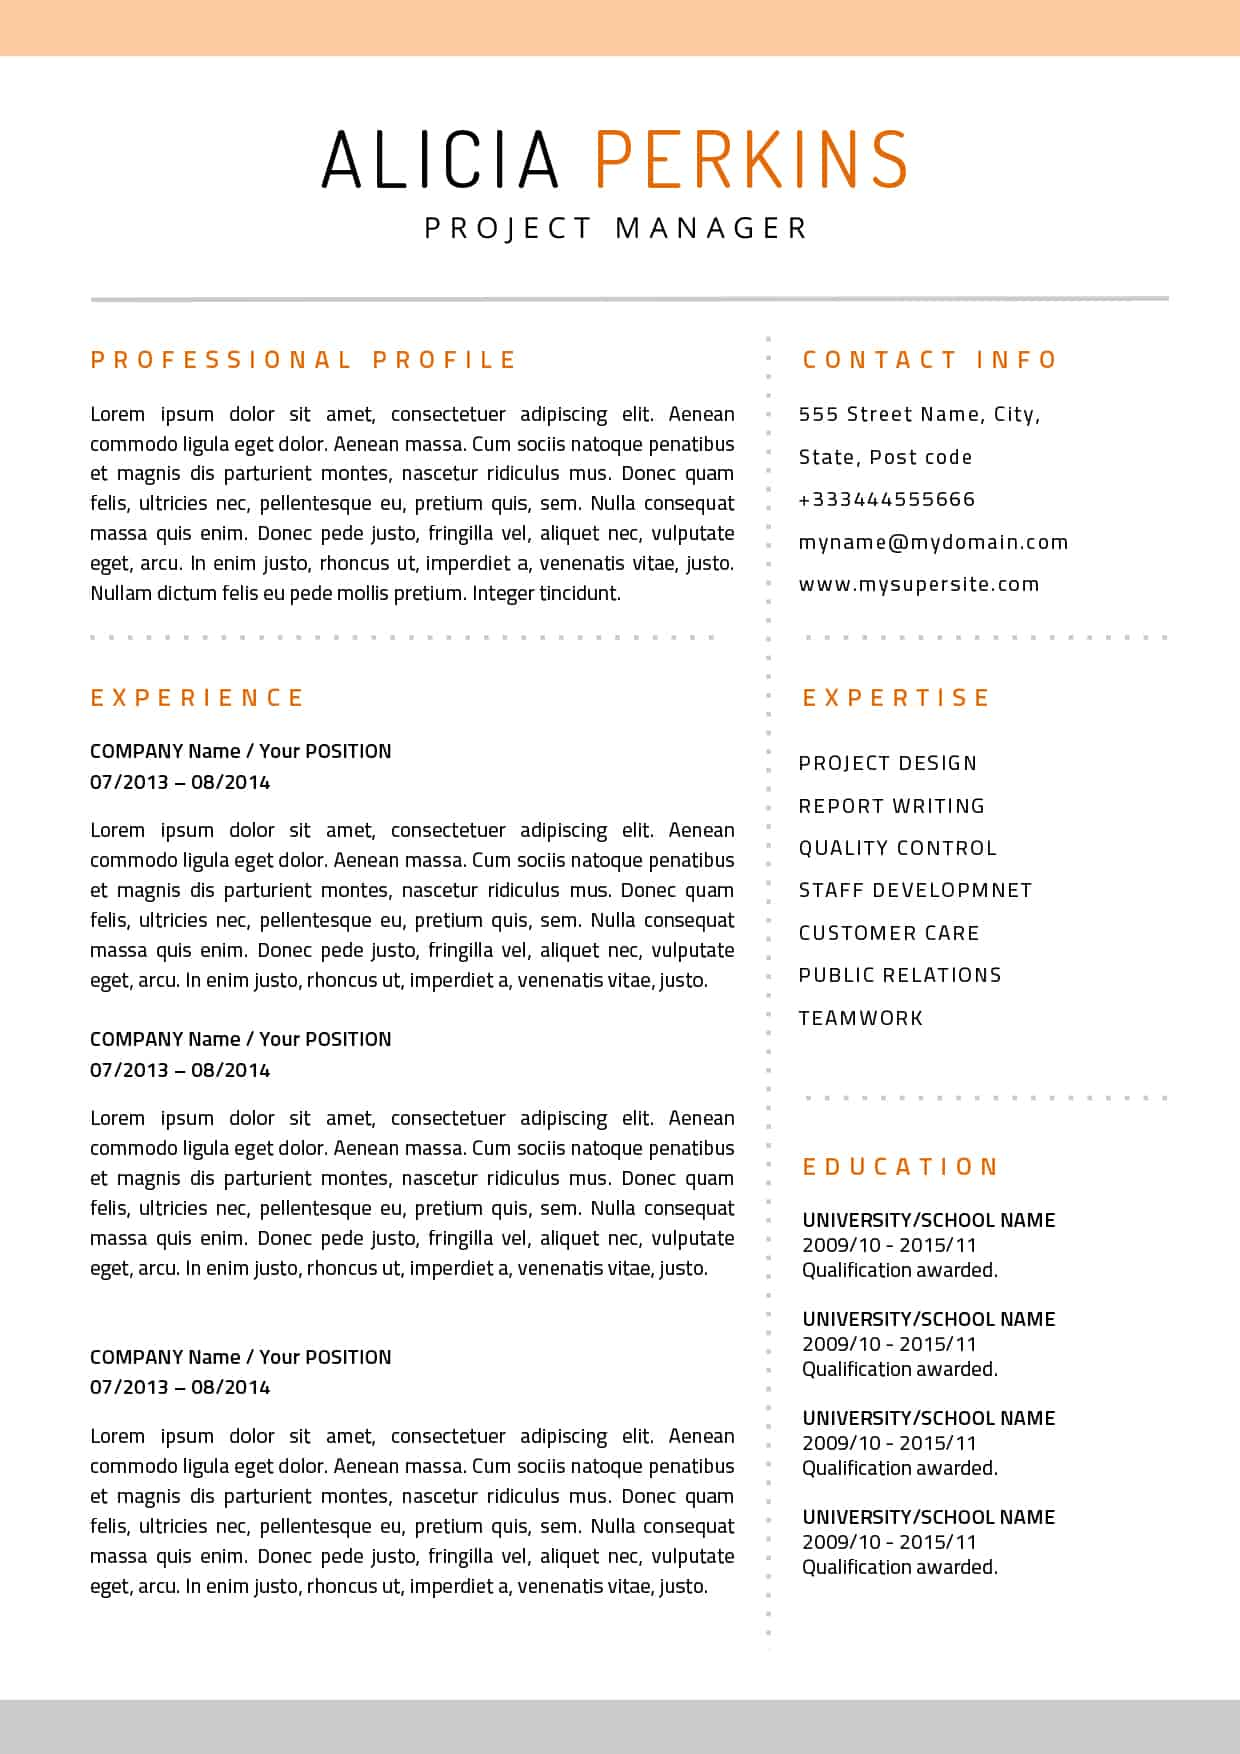 apple pages resume on etsy - Resume Template Pages Mac